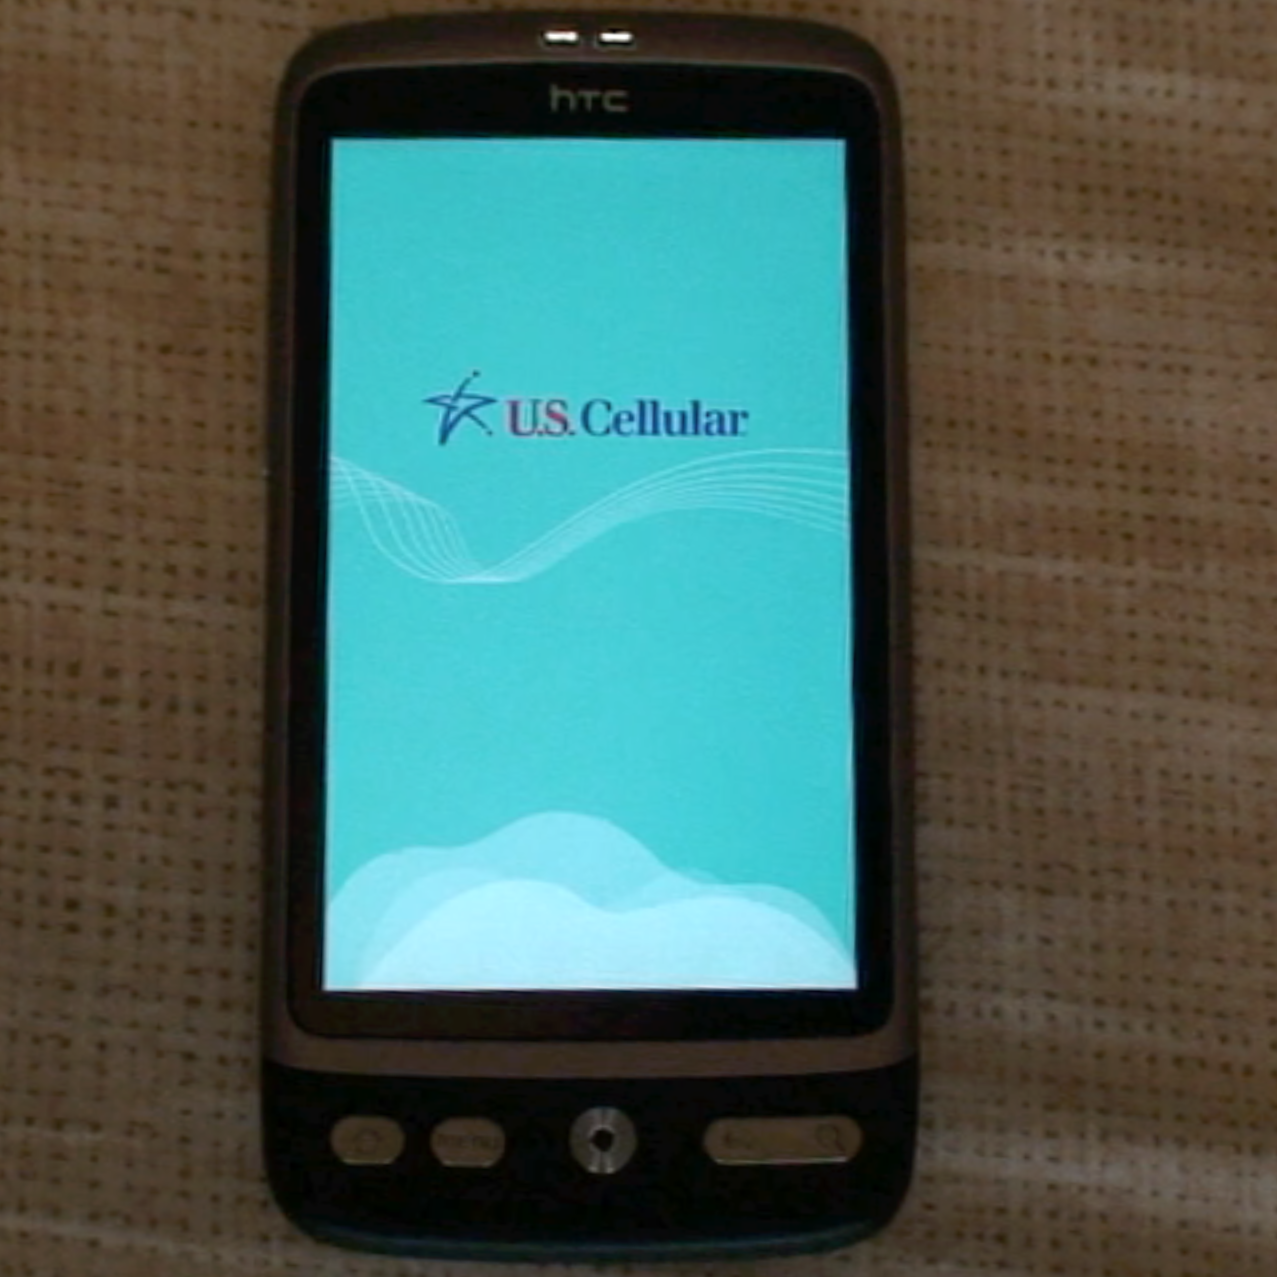 Android 2.1 Eclair – Product Reviews Net